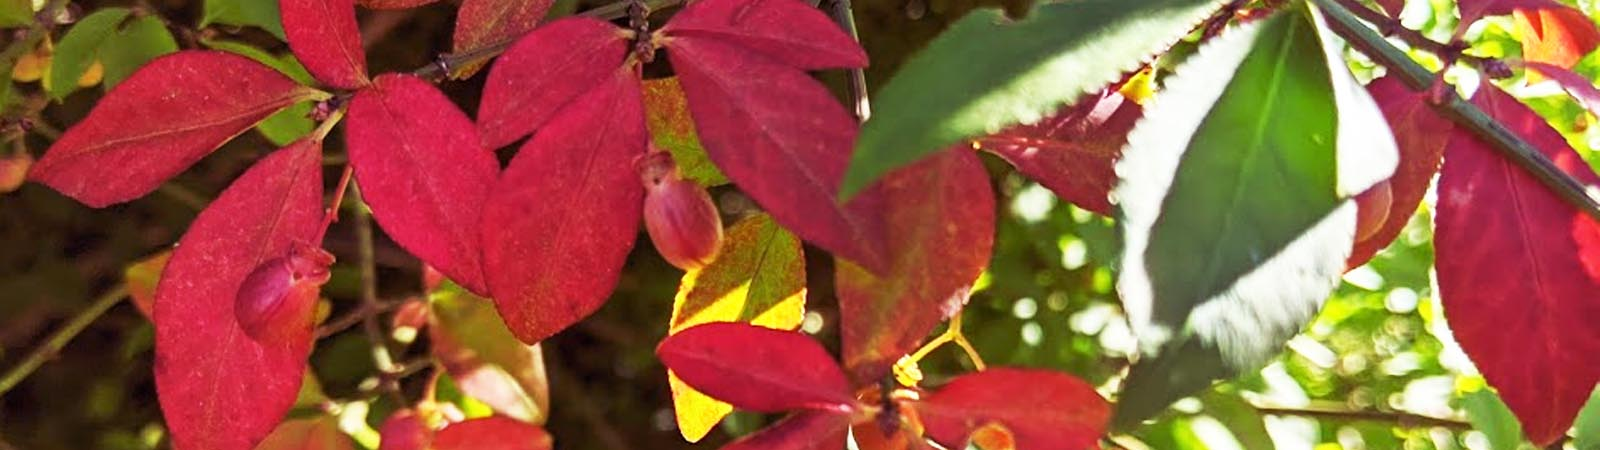 Staunton's Fall Foliage Report: Weekend October 8-10, 2021